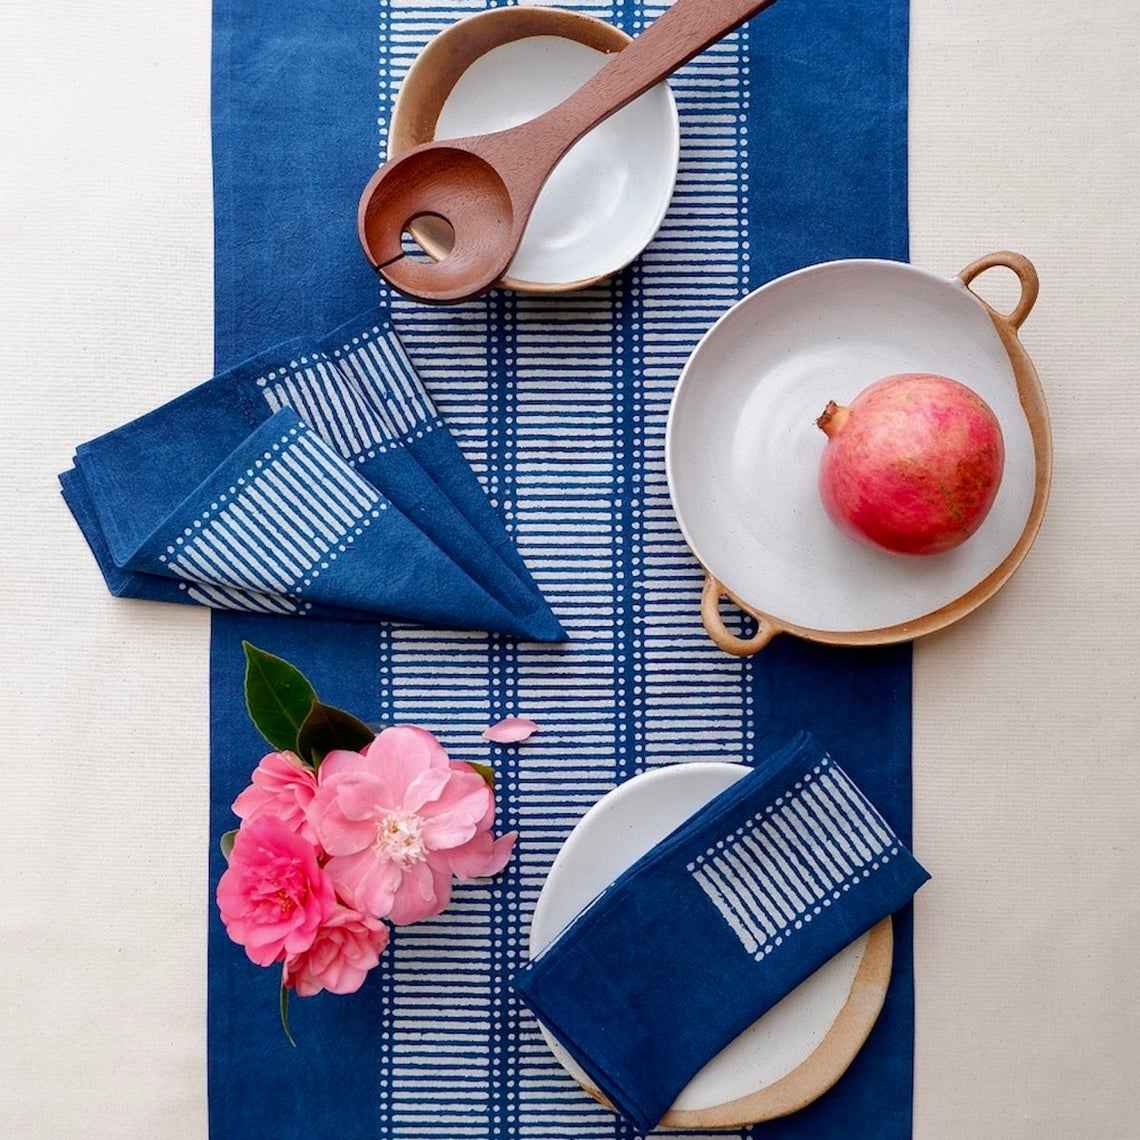 Blue indigo dyed table cloth from Etsy